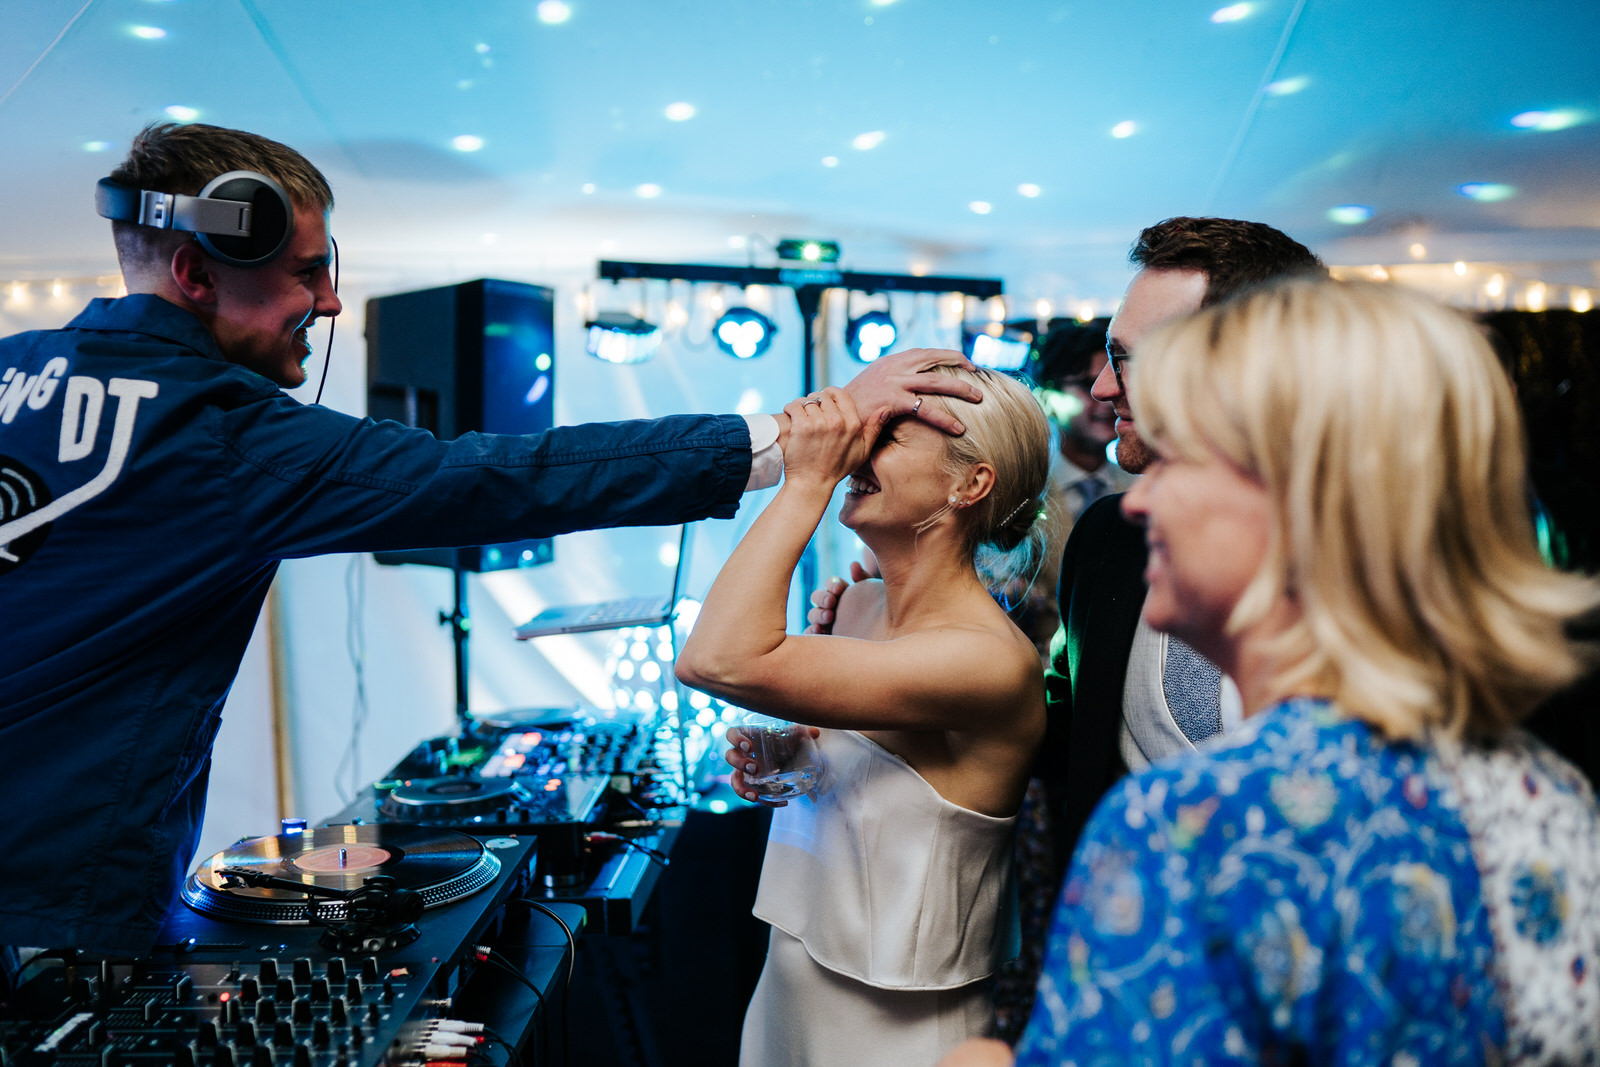 Brother of the bride jokingly grabs bride's head and smiles while doing it